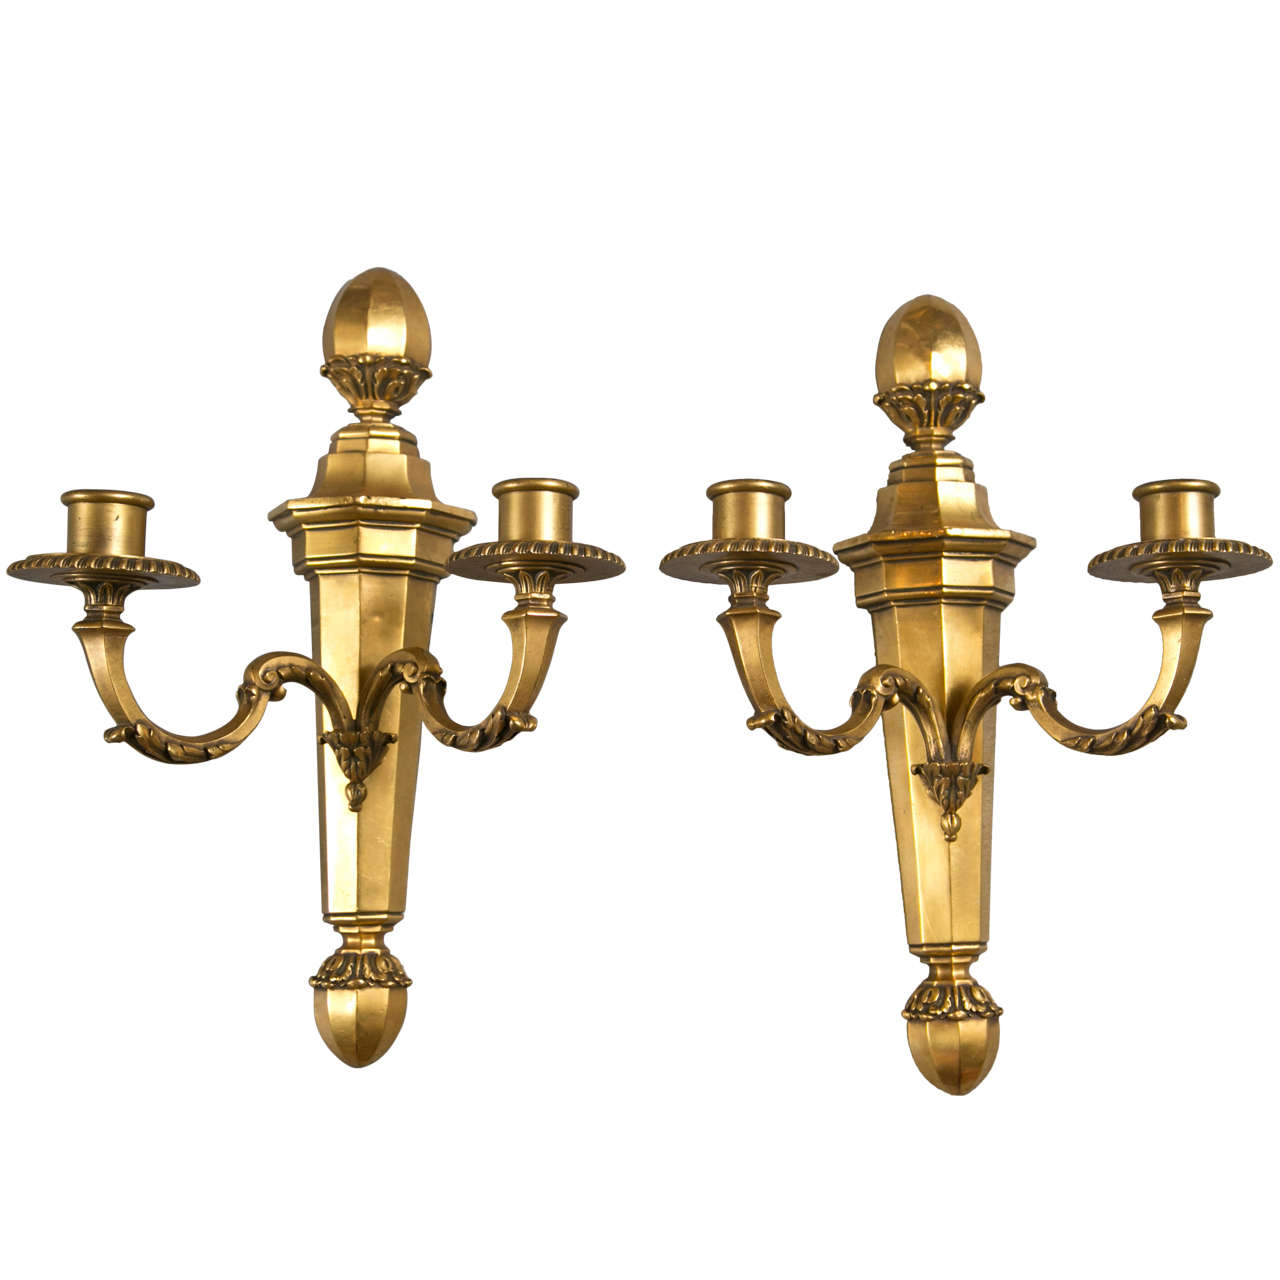 Pair of Gilt Bronze Caldwell Sconces For Sale